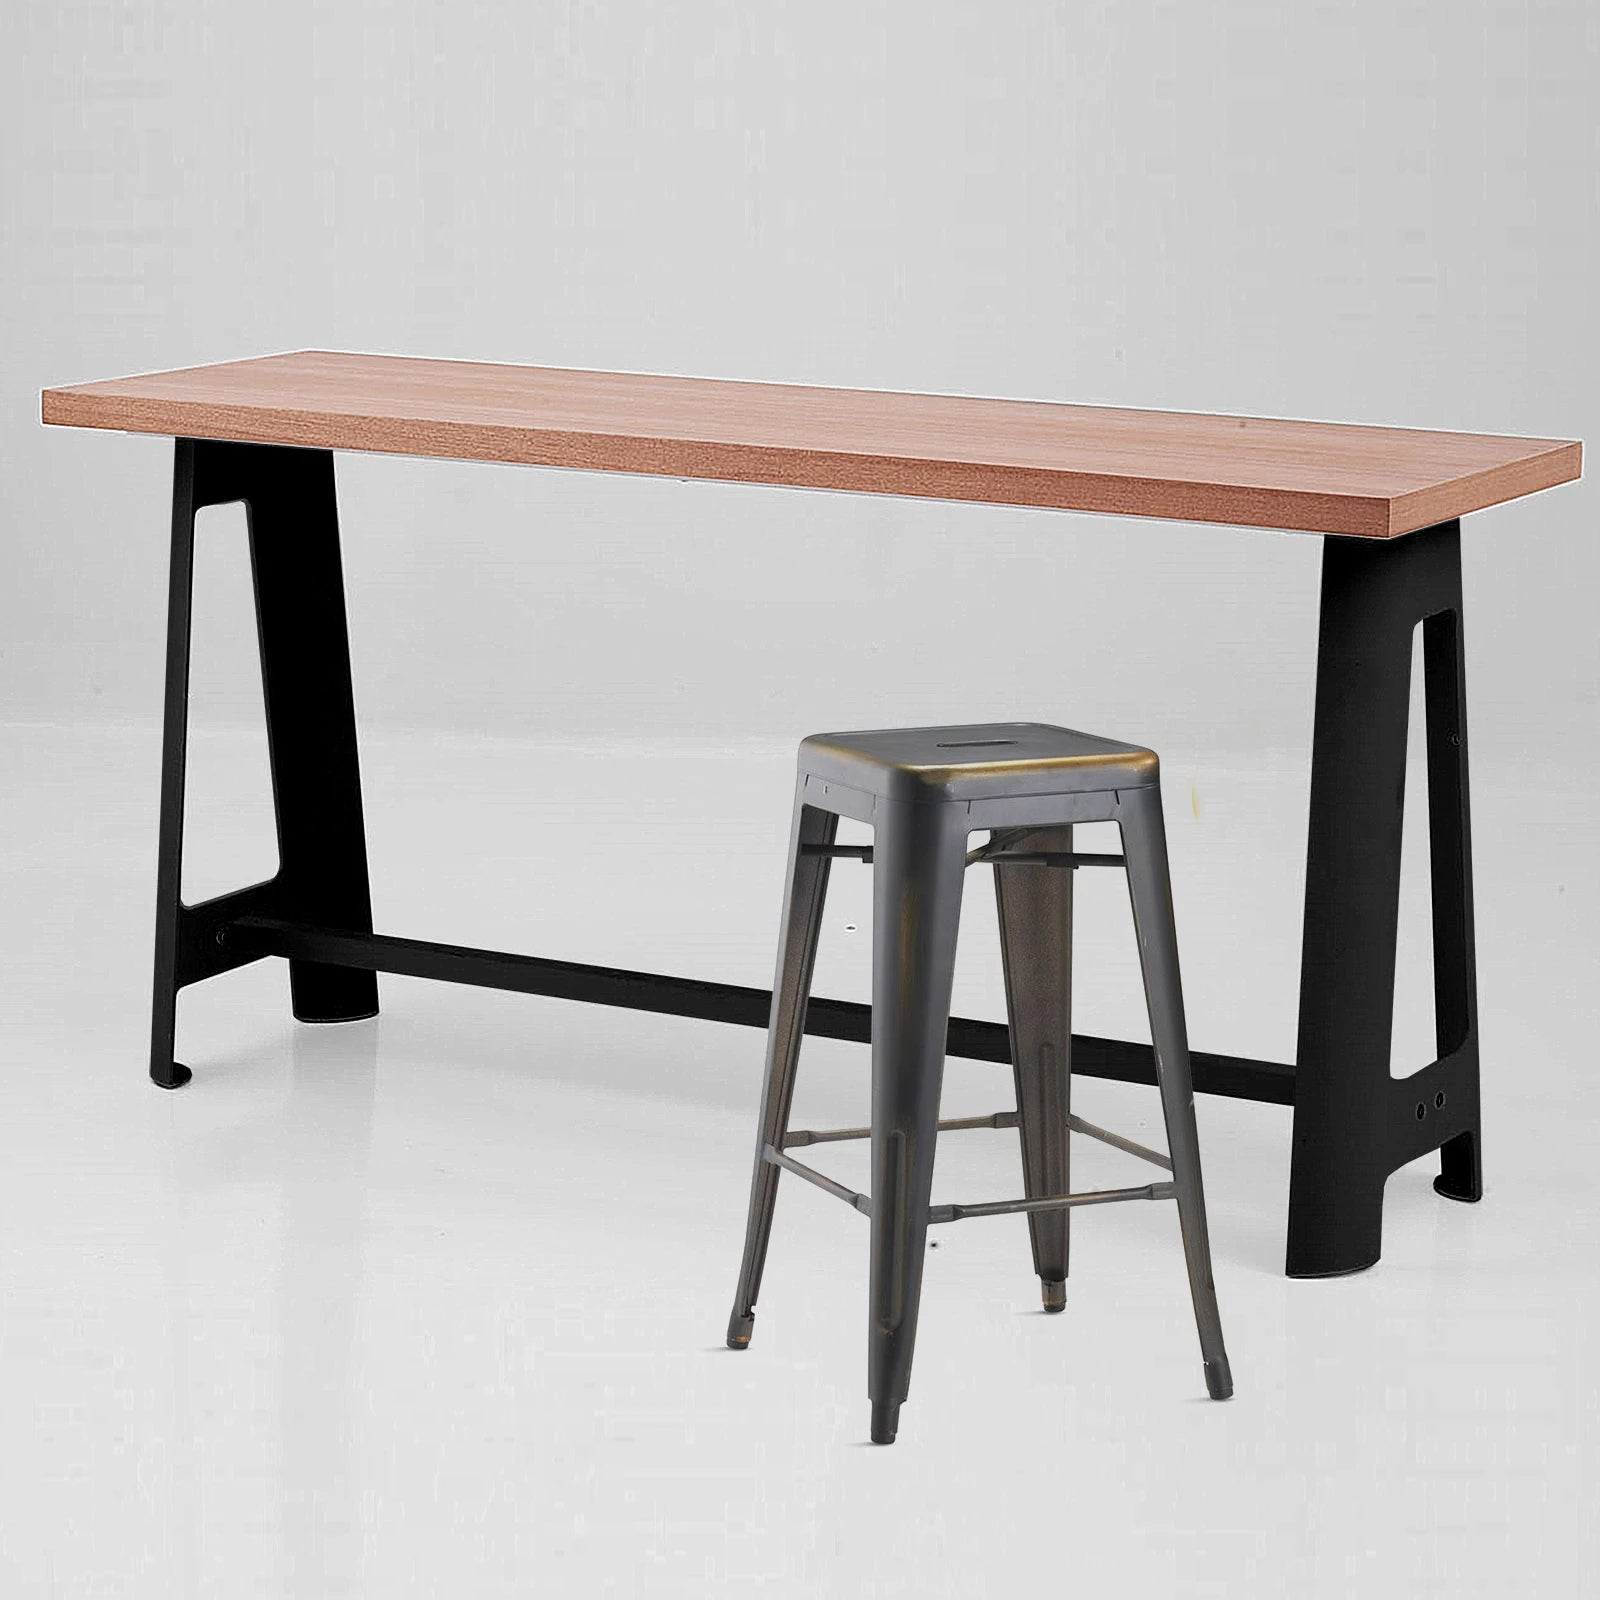 Industrial Long bar table GT-304-NB -  طاولة بار طويلة صناعية - Shop Online Furniture and Home Decor Store in Dubai, UAE at ebarza